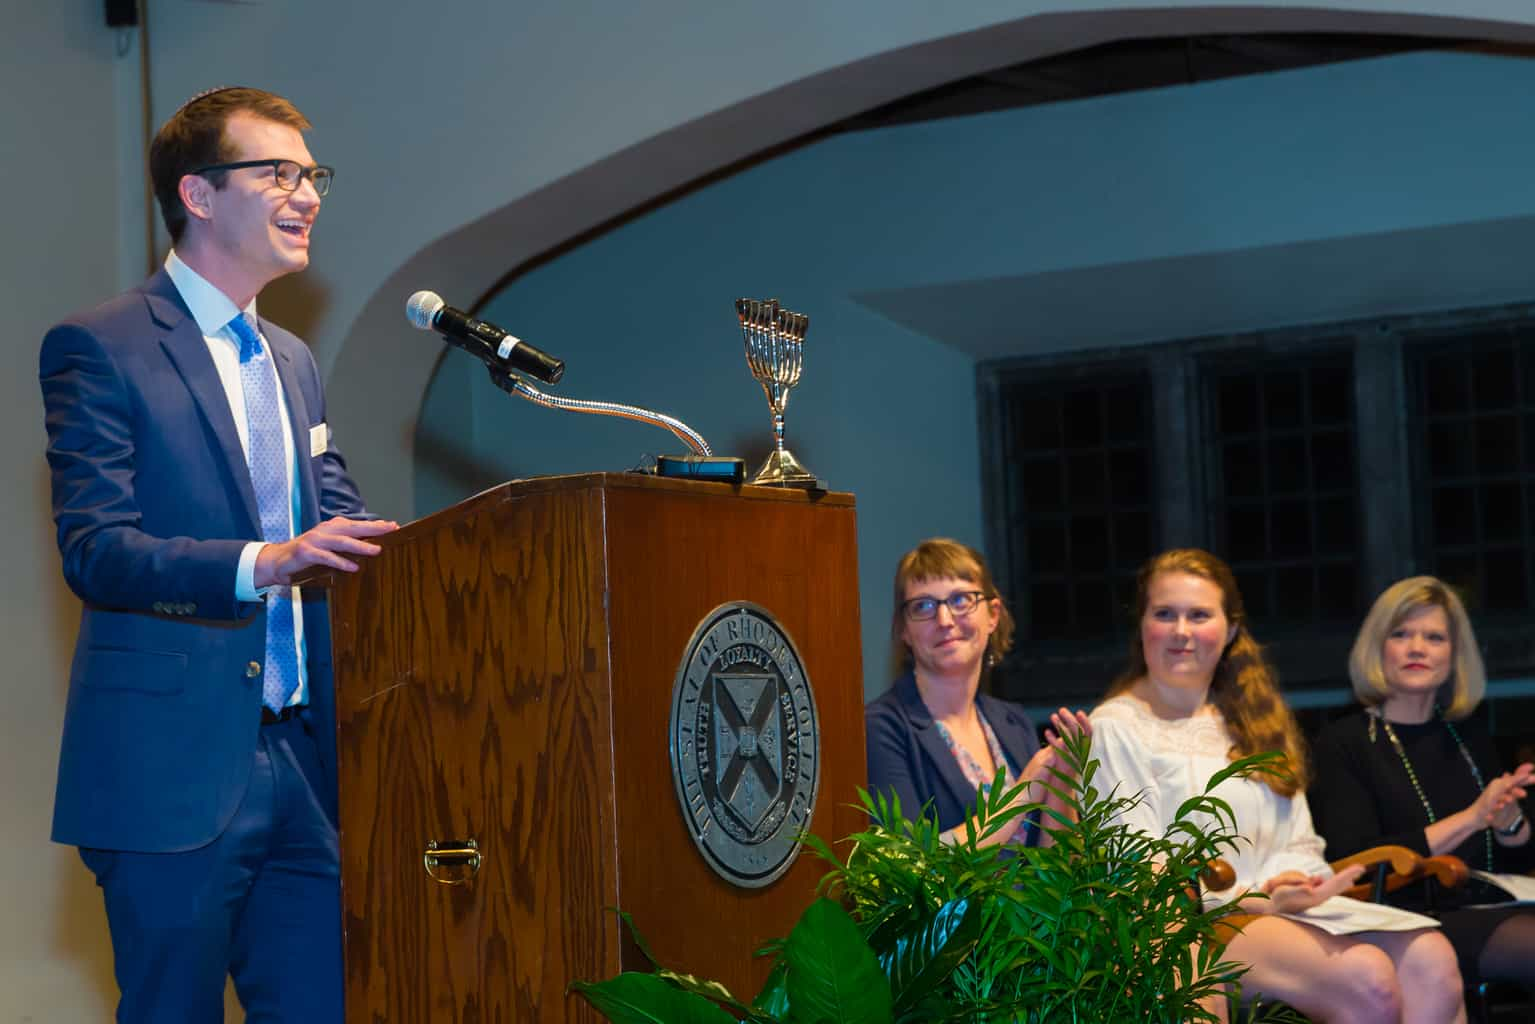 jewish-memphis-celebrates-launch-of-rhodes-college-hillel-with-memphis-jewish-federation